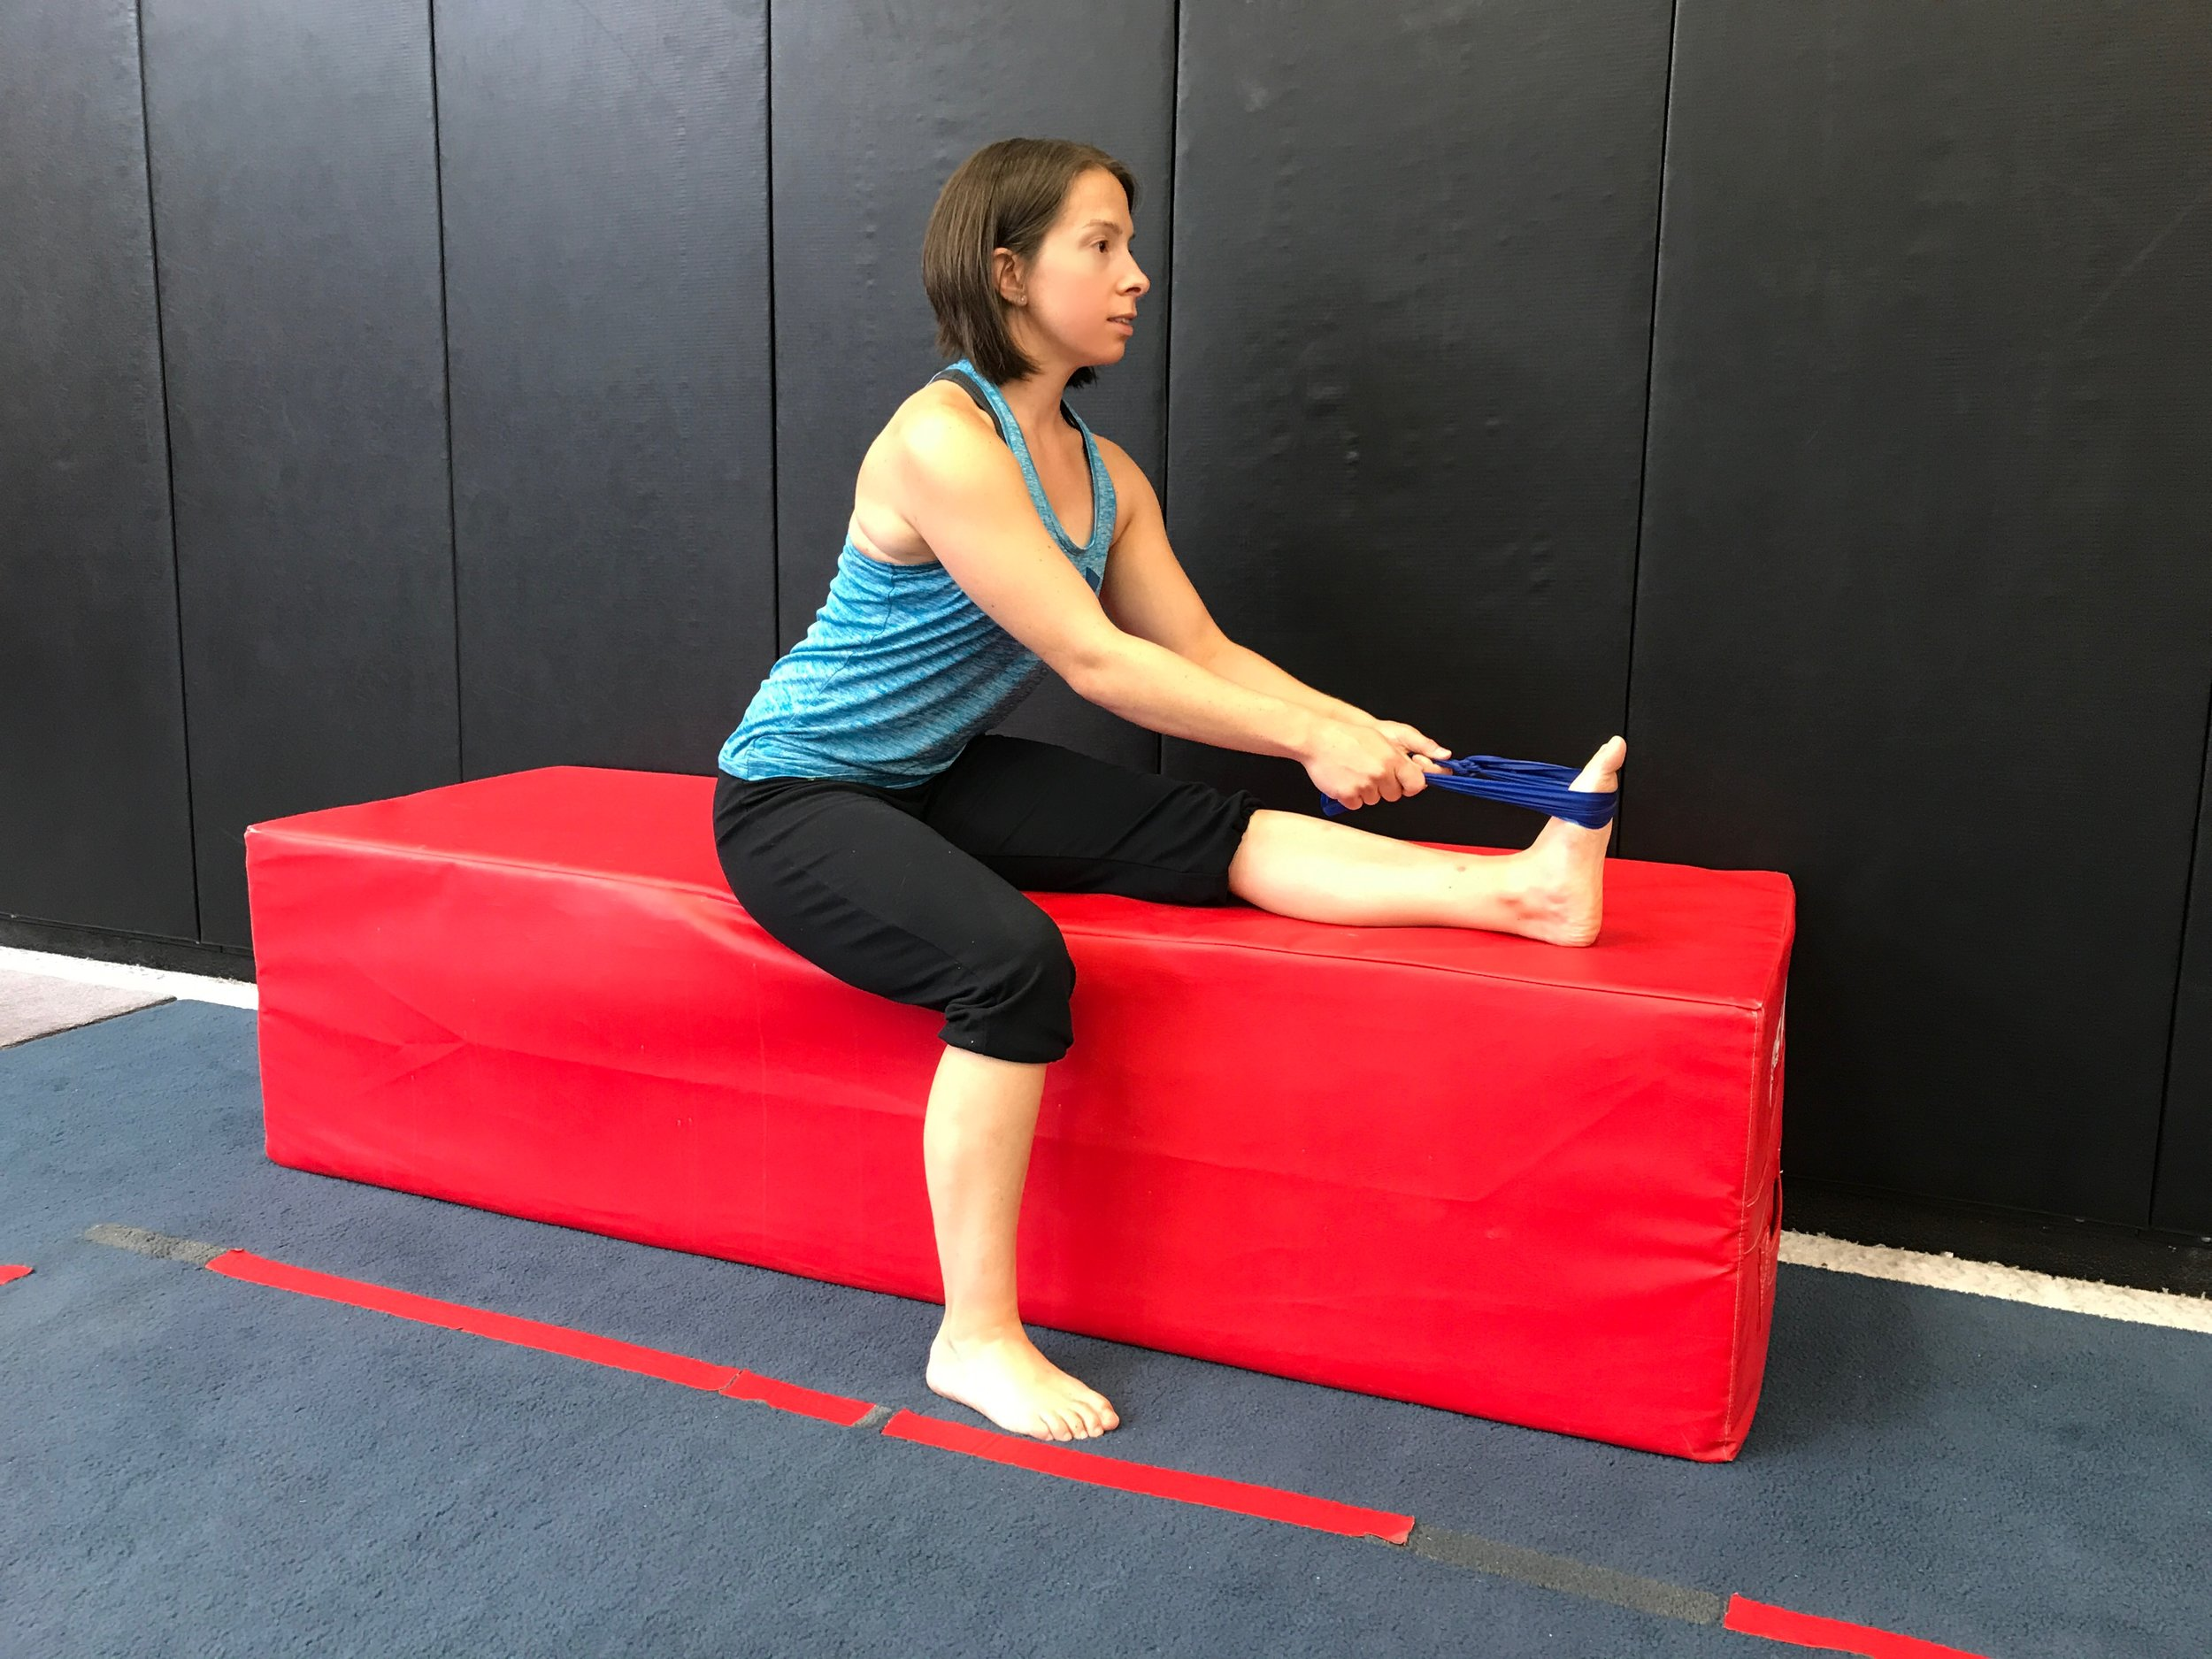 Using a strap, pull the foot/toes back and lean from the waist (keeping your back flat) until a stretch is felt in the back of the leg.